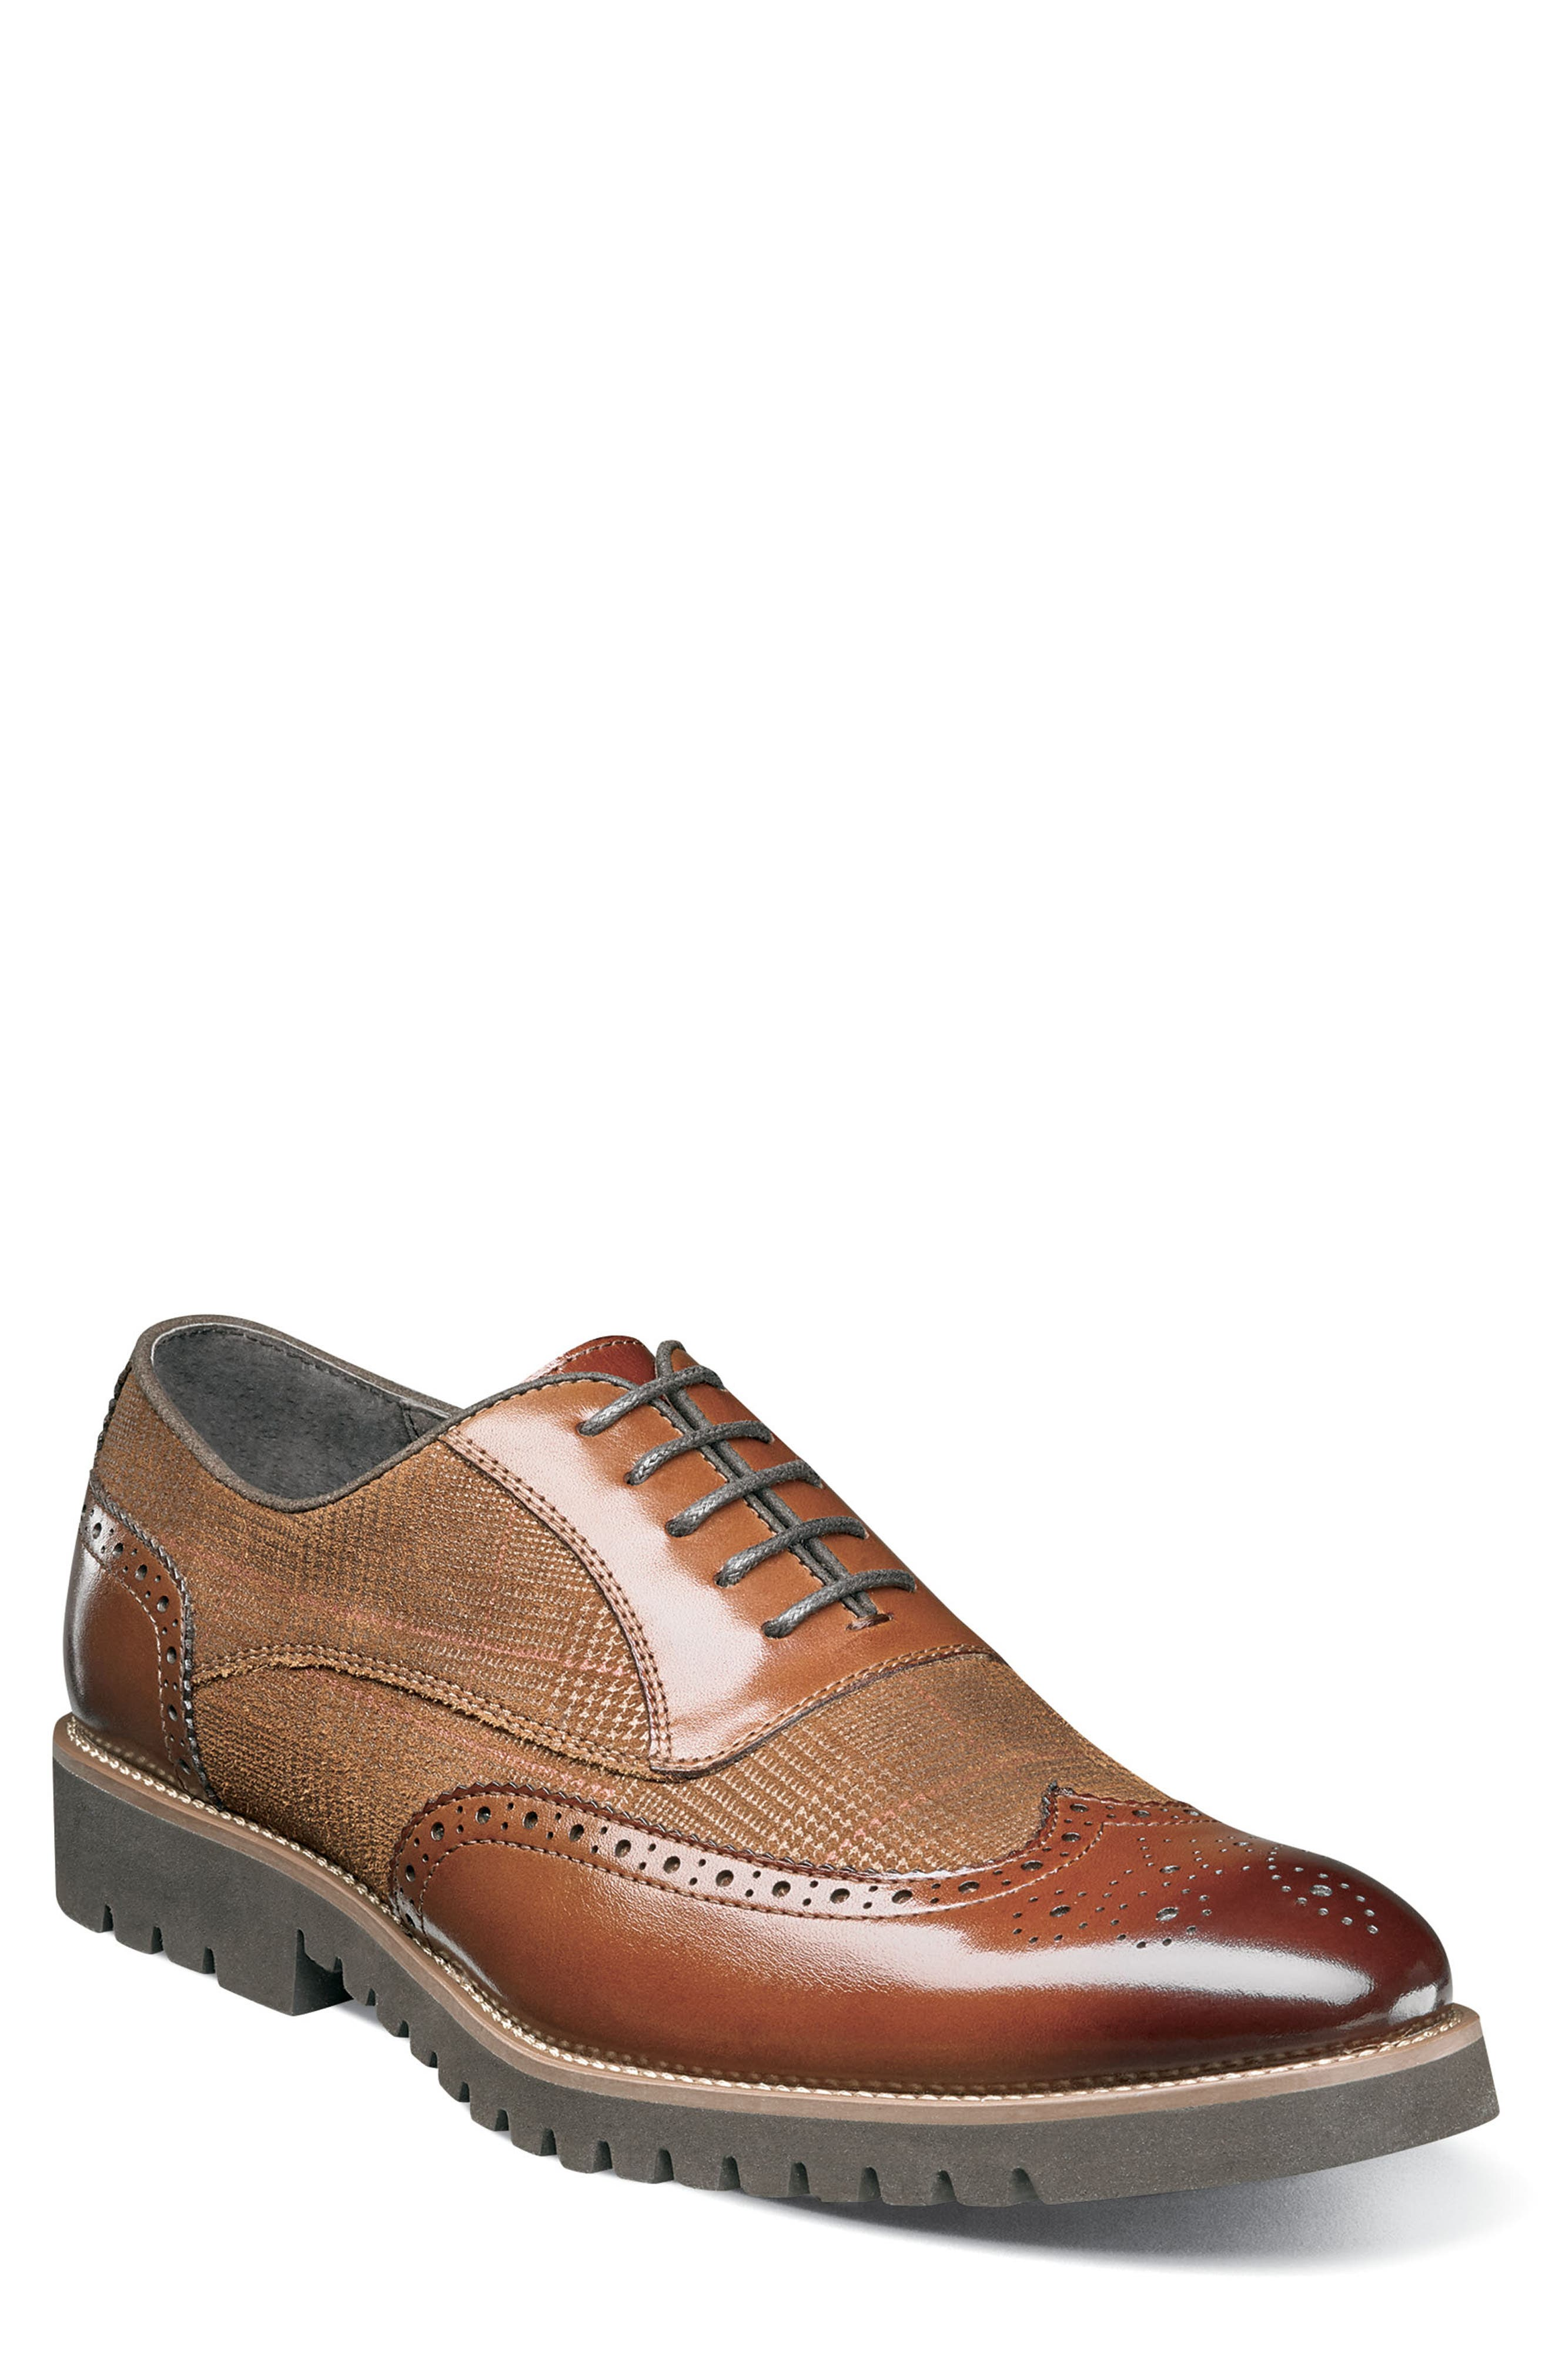 Men's 1950s Shoes Styles- Classics to Saddles to Rockabilly Mens Stacy Adams Baxley Glen Plaid Wingtip Size 14 M - Brown $105.00 AT vintagedancer.com